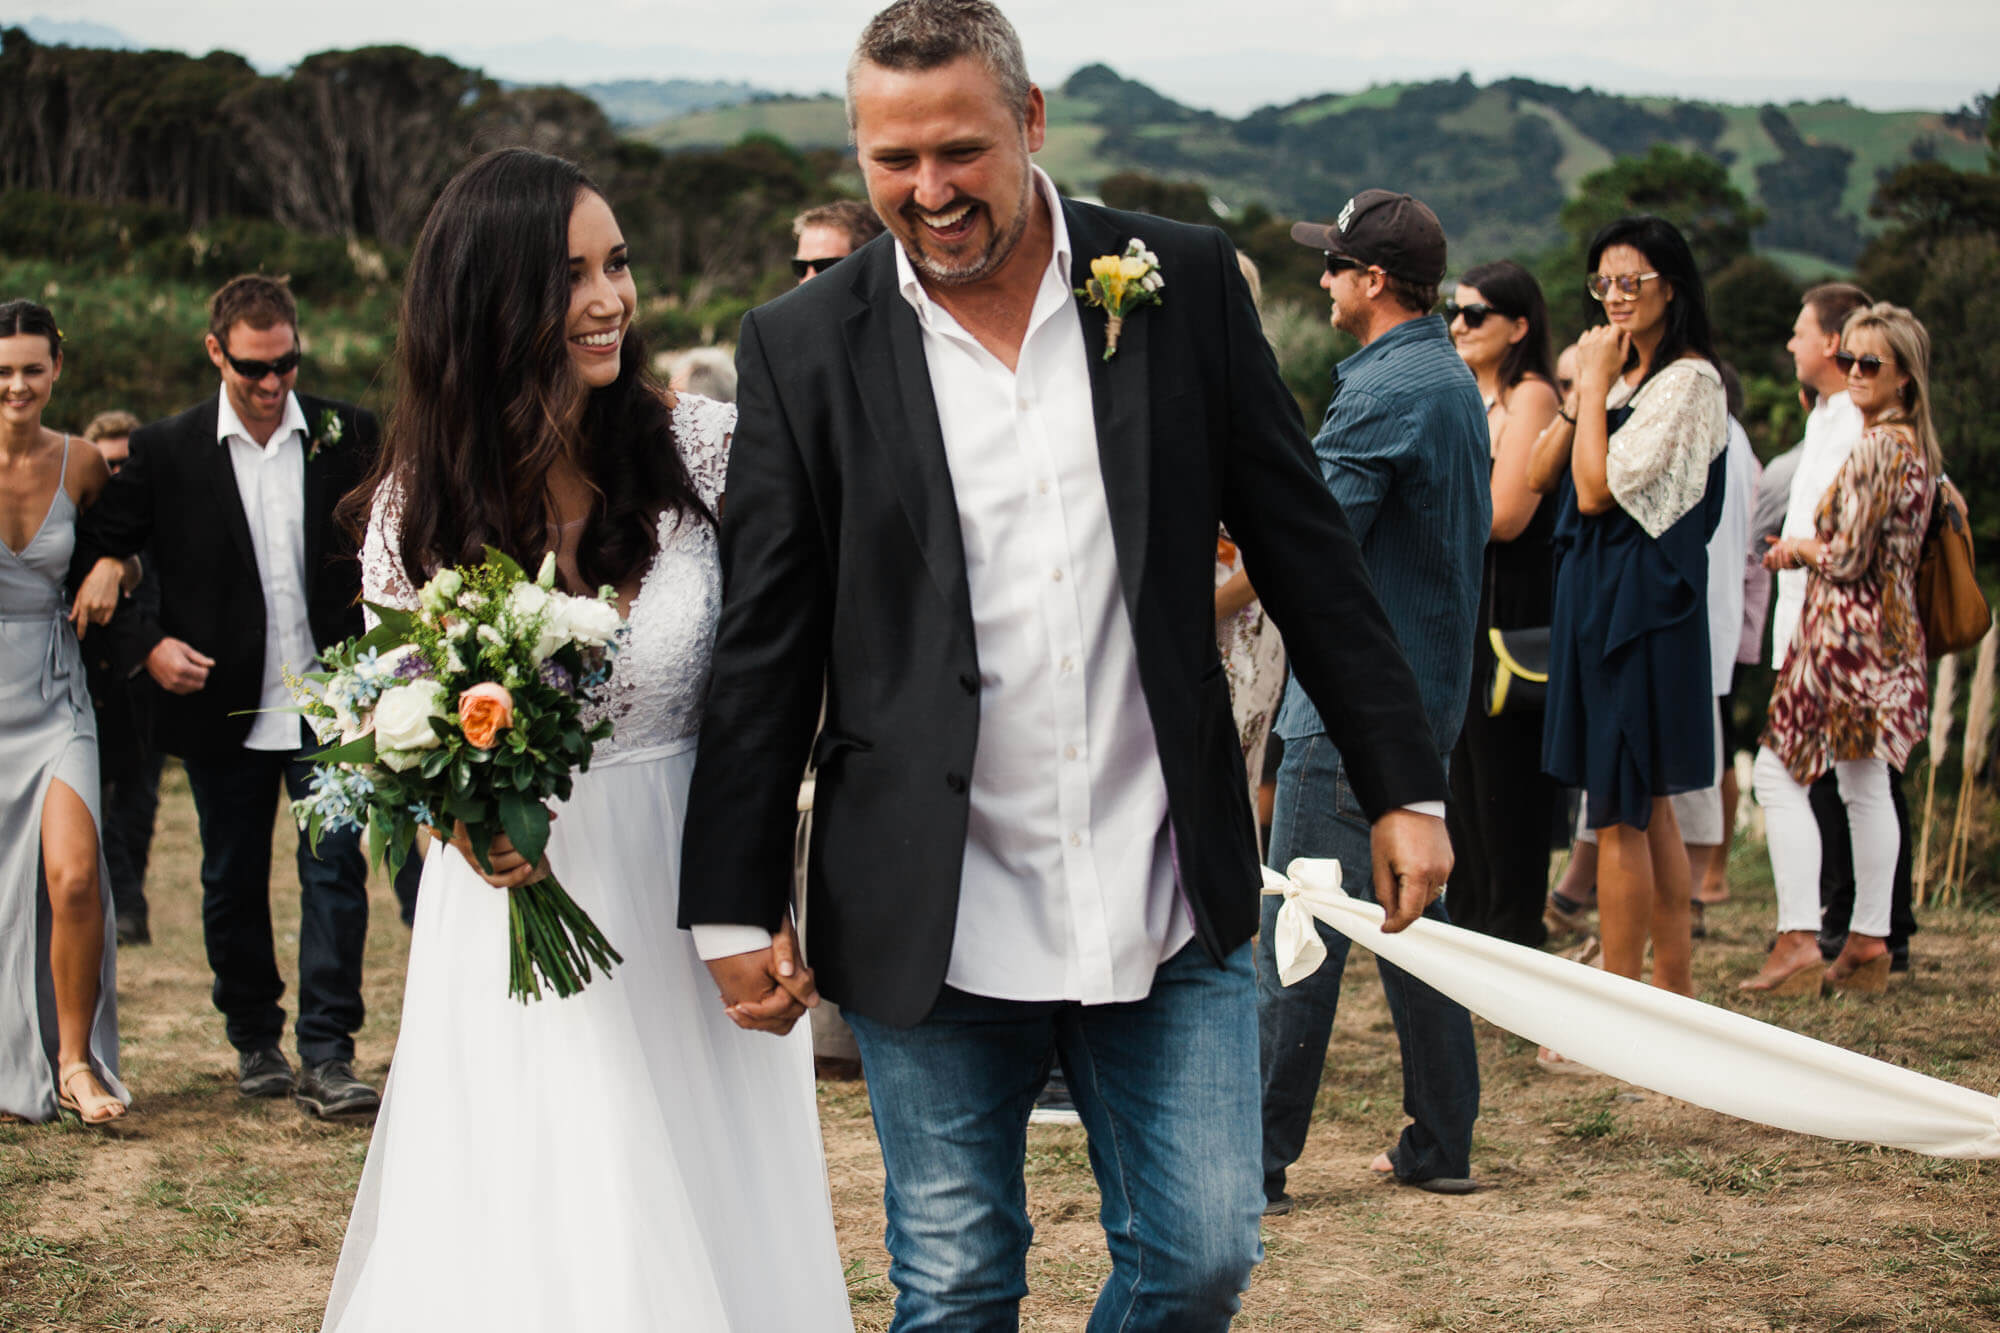 boho-bride-and-groom-walk-down-aisle-at-outdoor-wedding.jpg